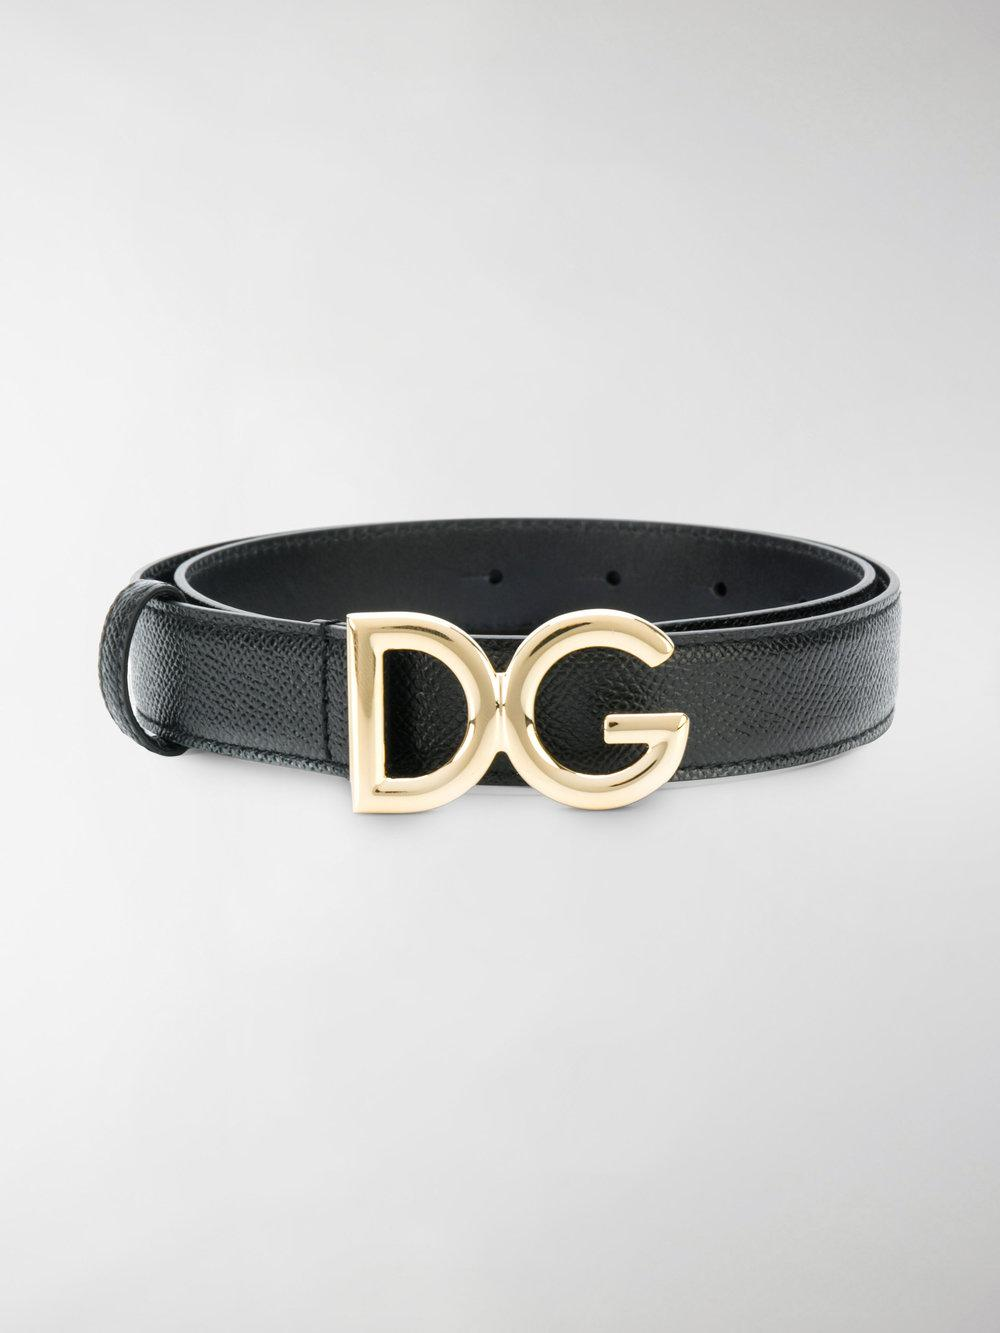 Dolce & Gabbana DG logo buckle belt Outlet Looking For Cheap Best Place Outlet Locations Sale Online nvvPtLF